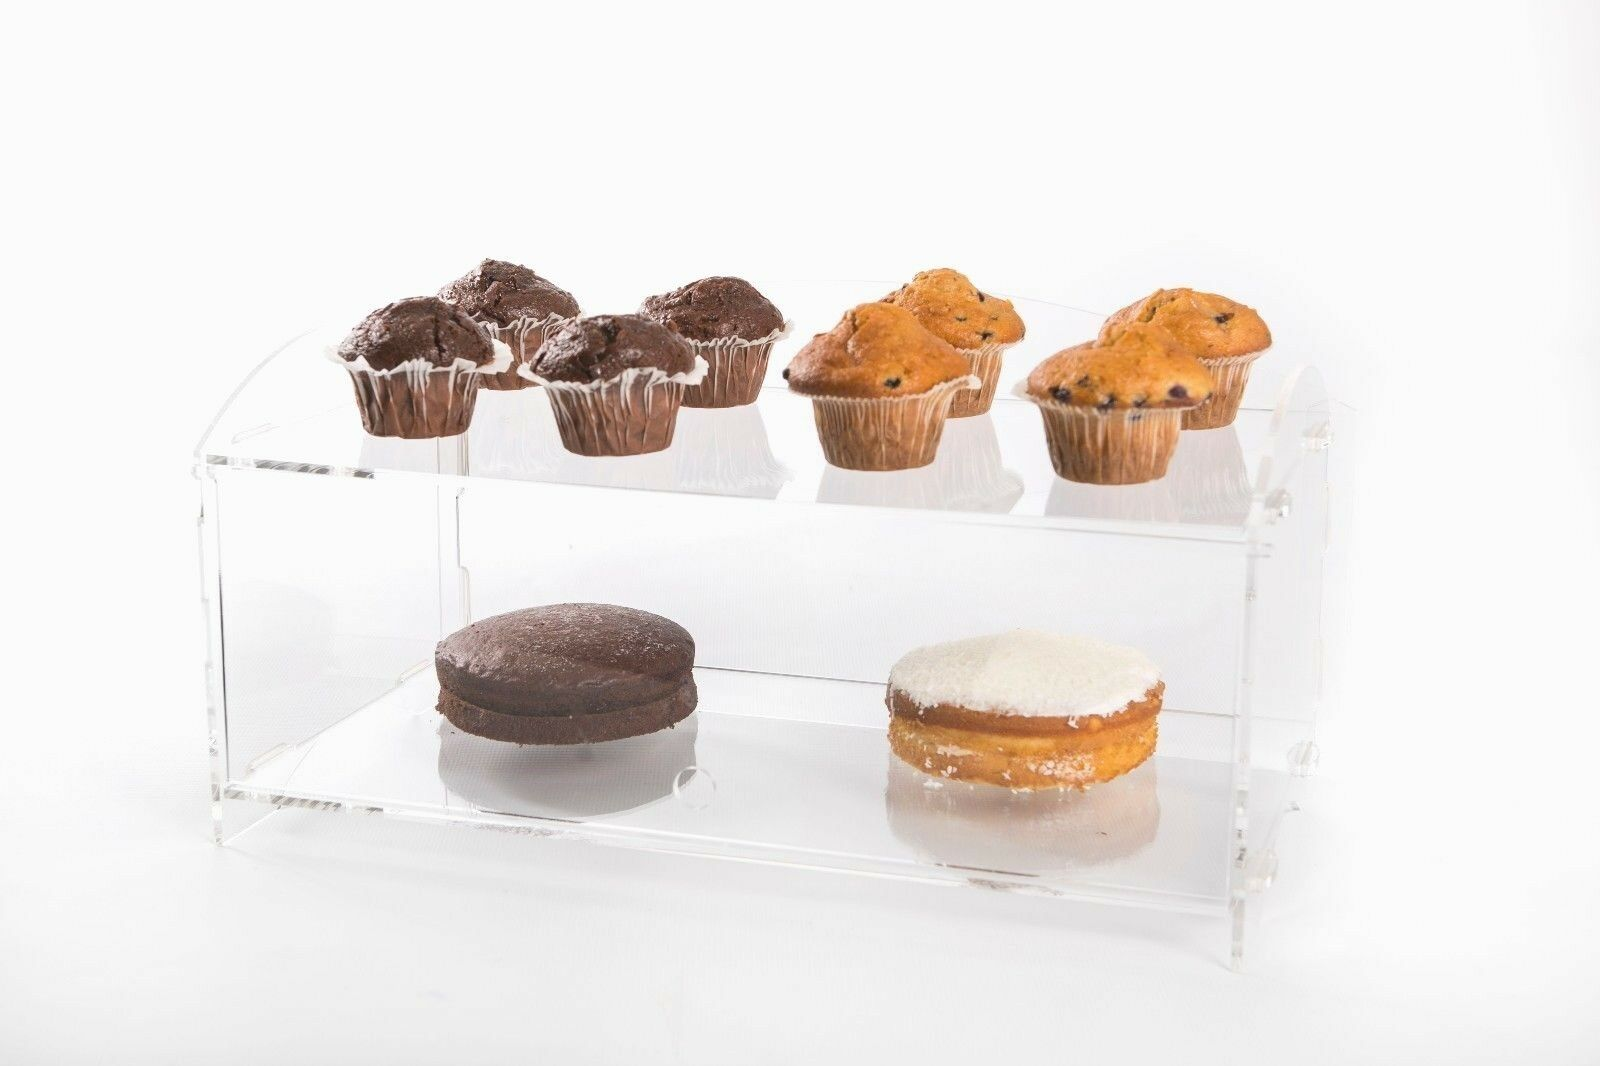 Acrylic Bakery Pastry Display Case Stand Cabinet Cakes Donuts Cupcakes Pastries H520mm x W490mm x D240mm